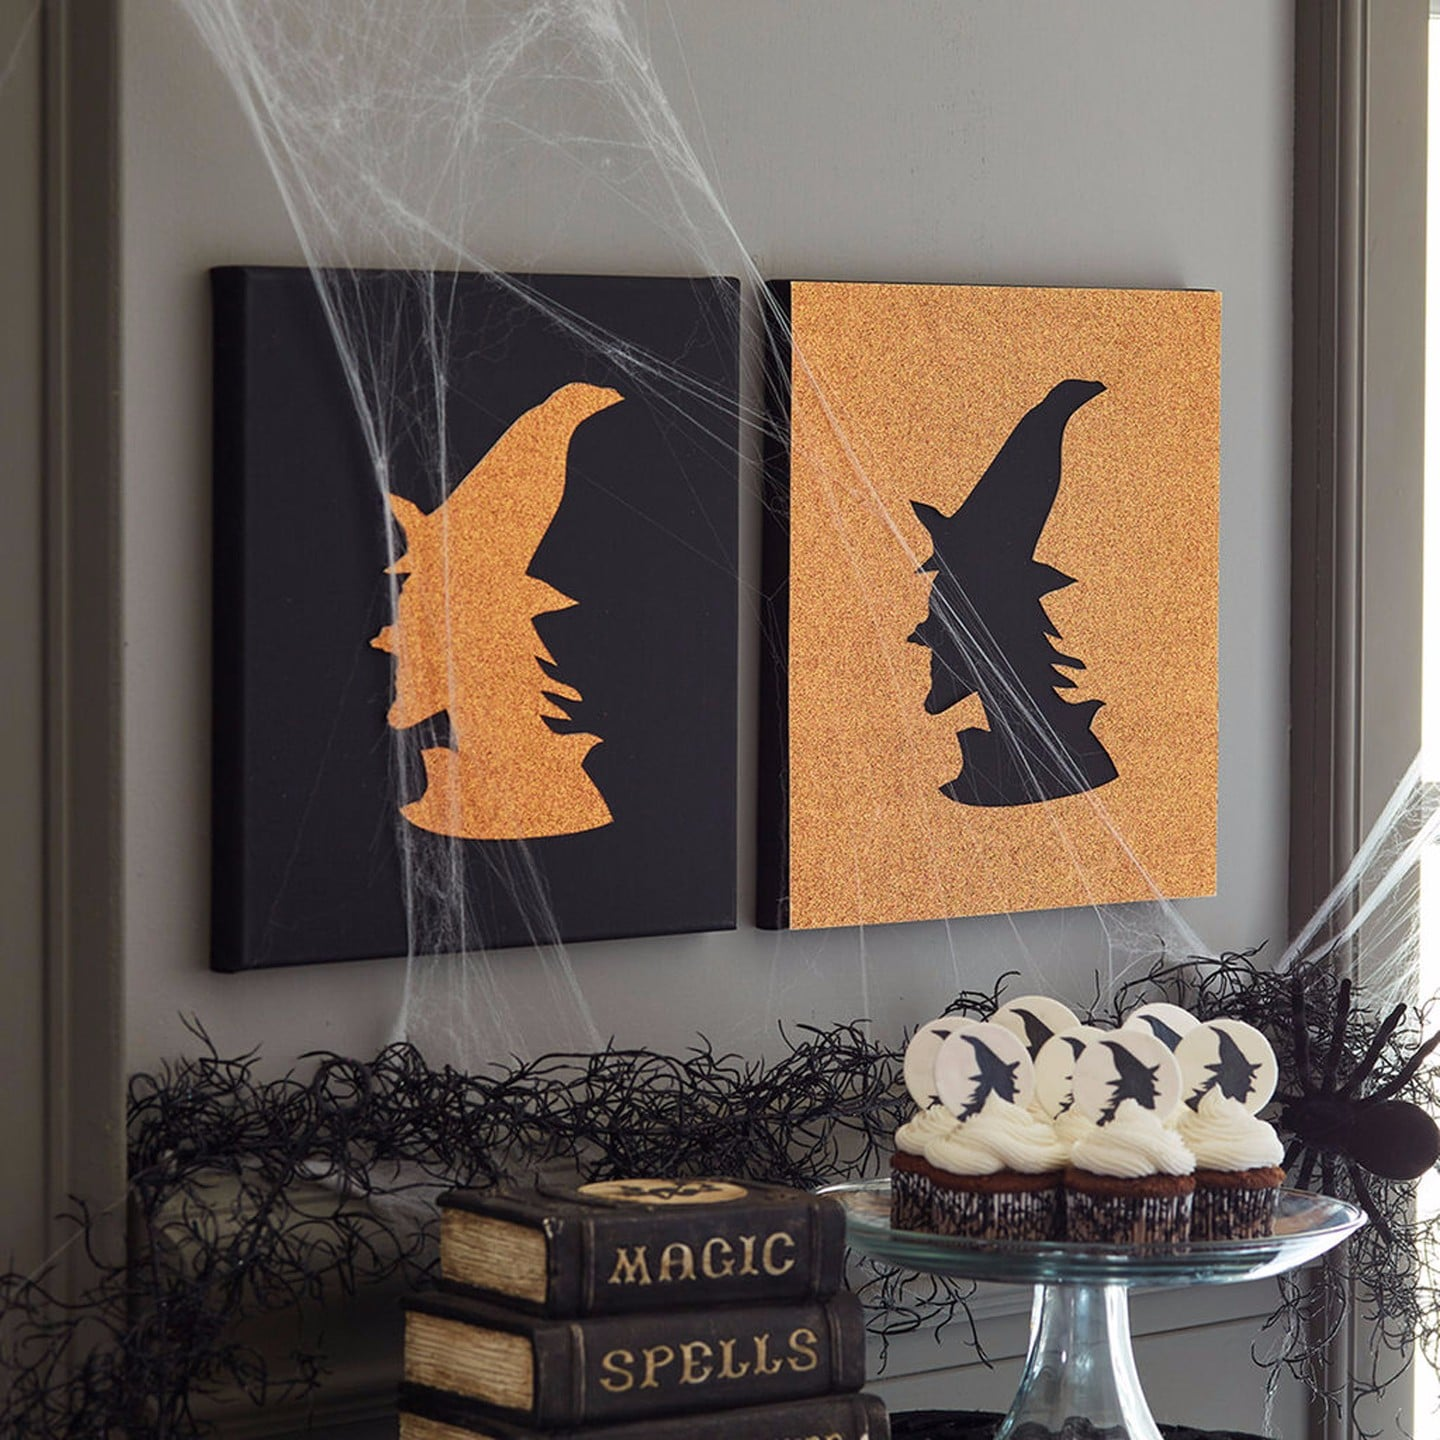 michaels halloween decorations 2017 popsugar smart living - Halloween Decorations Images